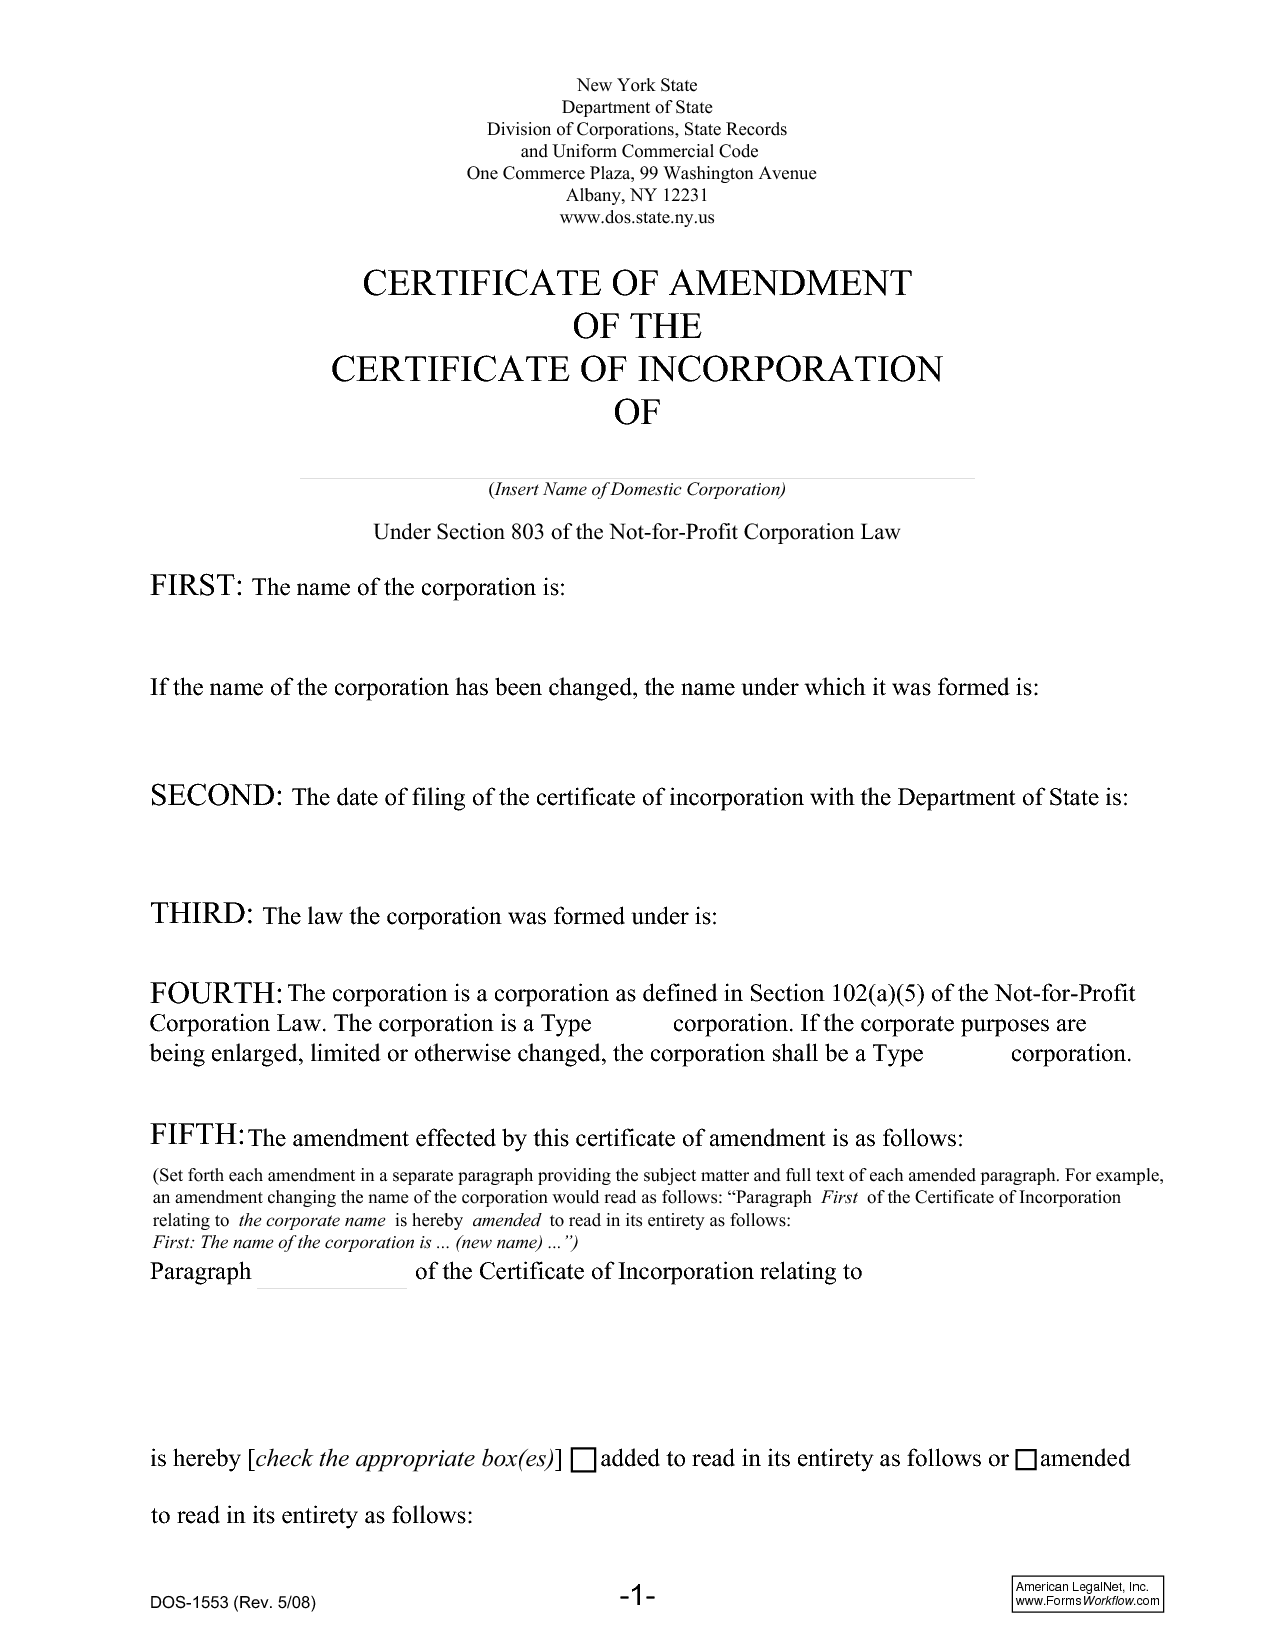 Certificate of Amendment Sample